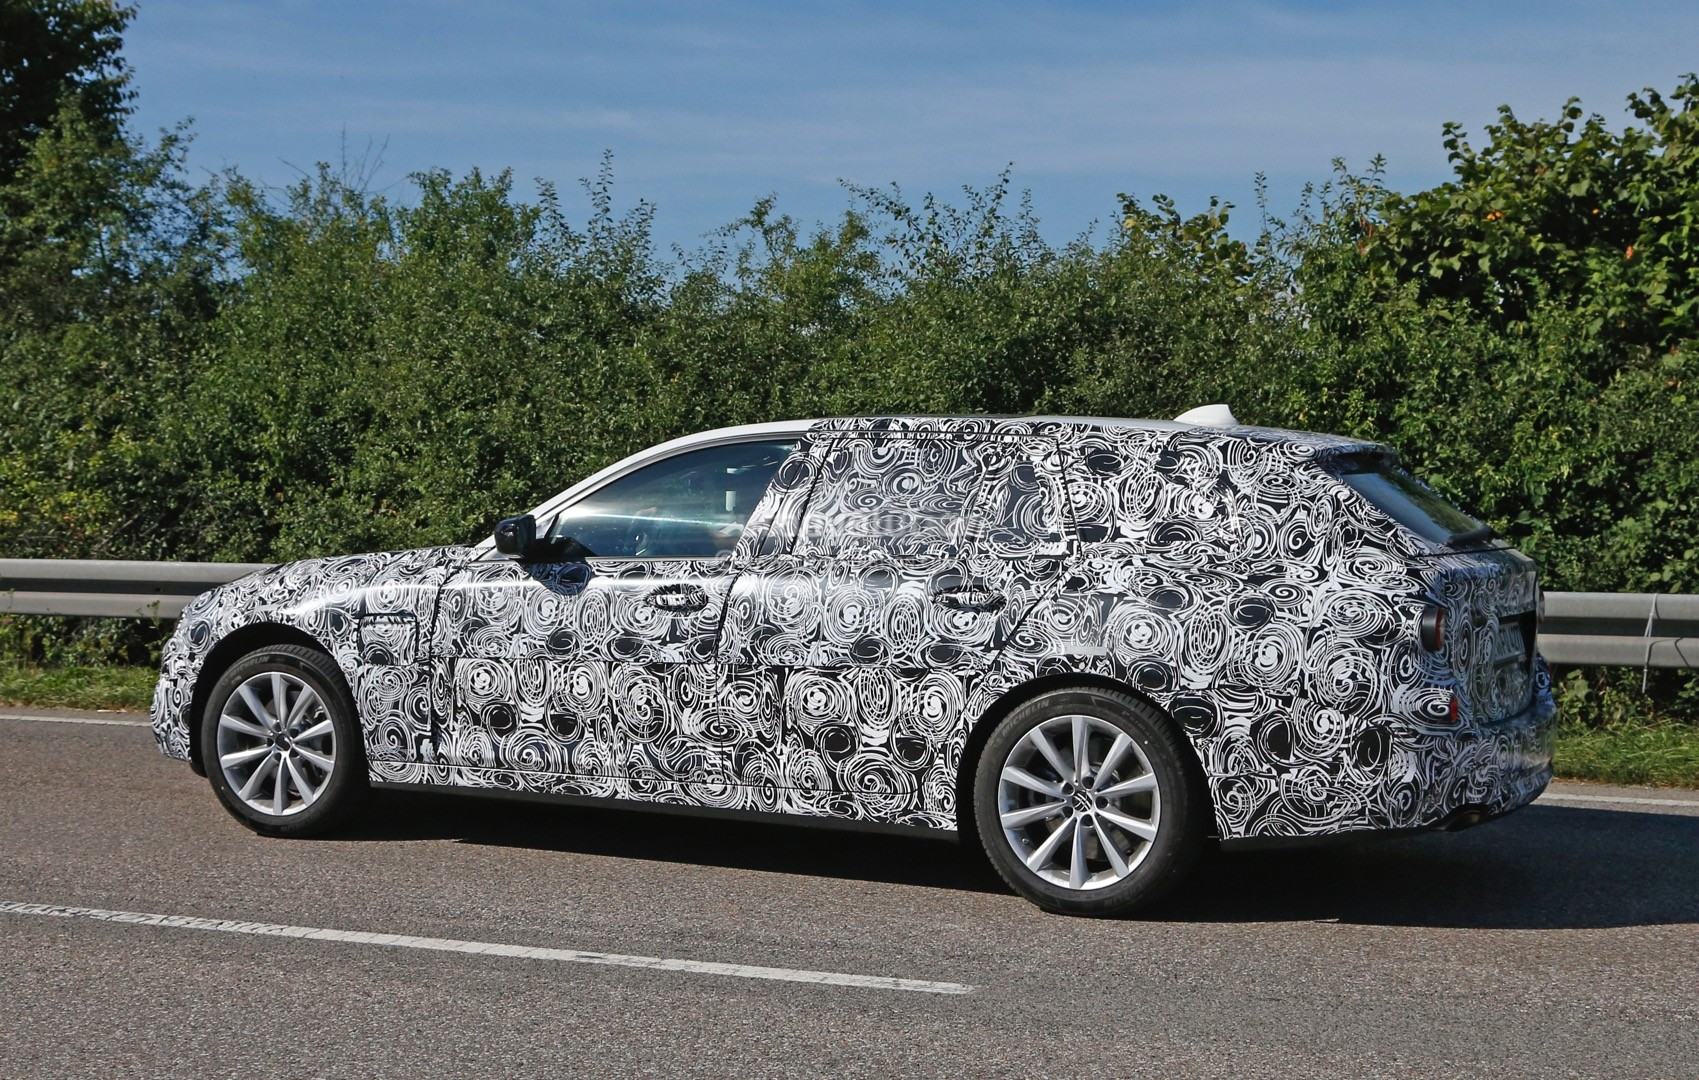 2017 bmw g31 5 series touring spied prototypes show new front end autoevolution. Black Bedroom Furniture Sets. Home Design Ideas